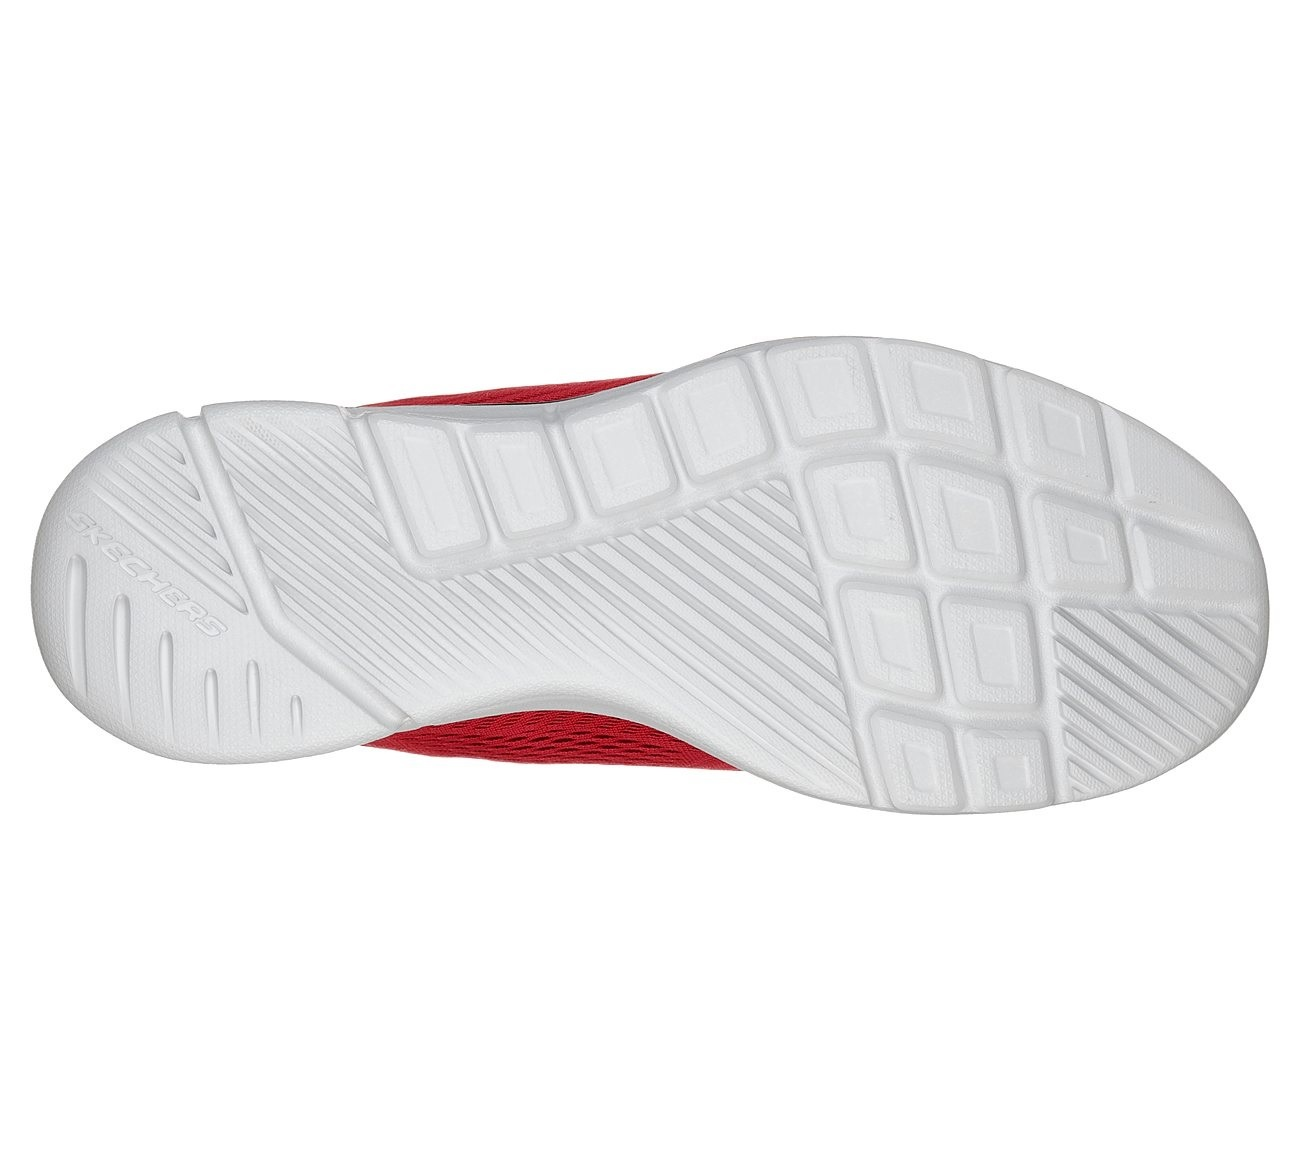 Skechers 52927 RDBK- RELAXED FIT: EQUALIZER 3.0, Turnschuh, Mesh